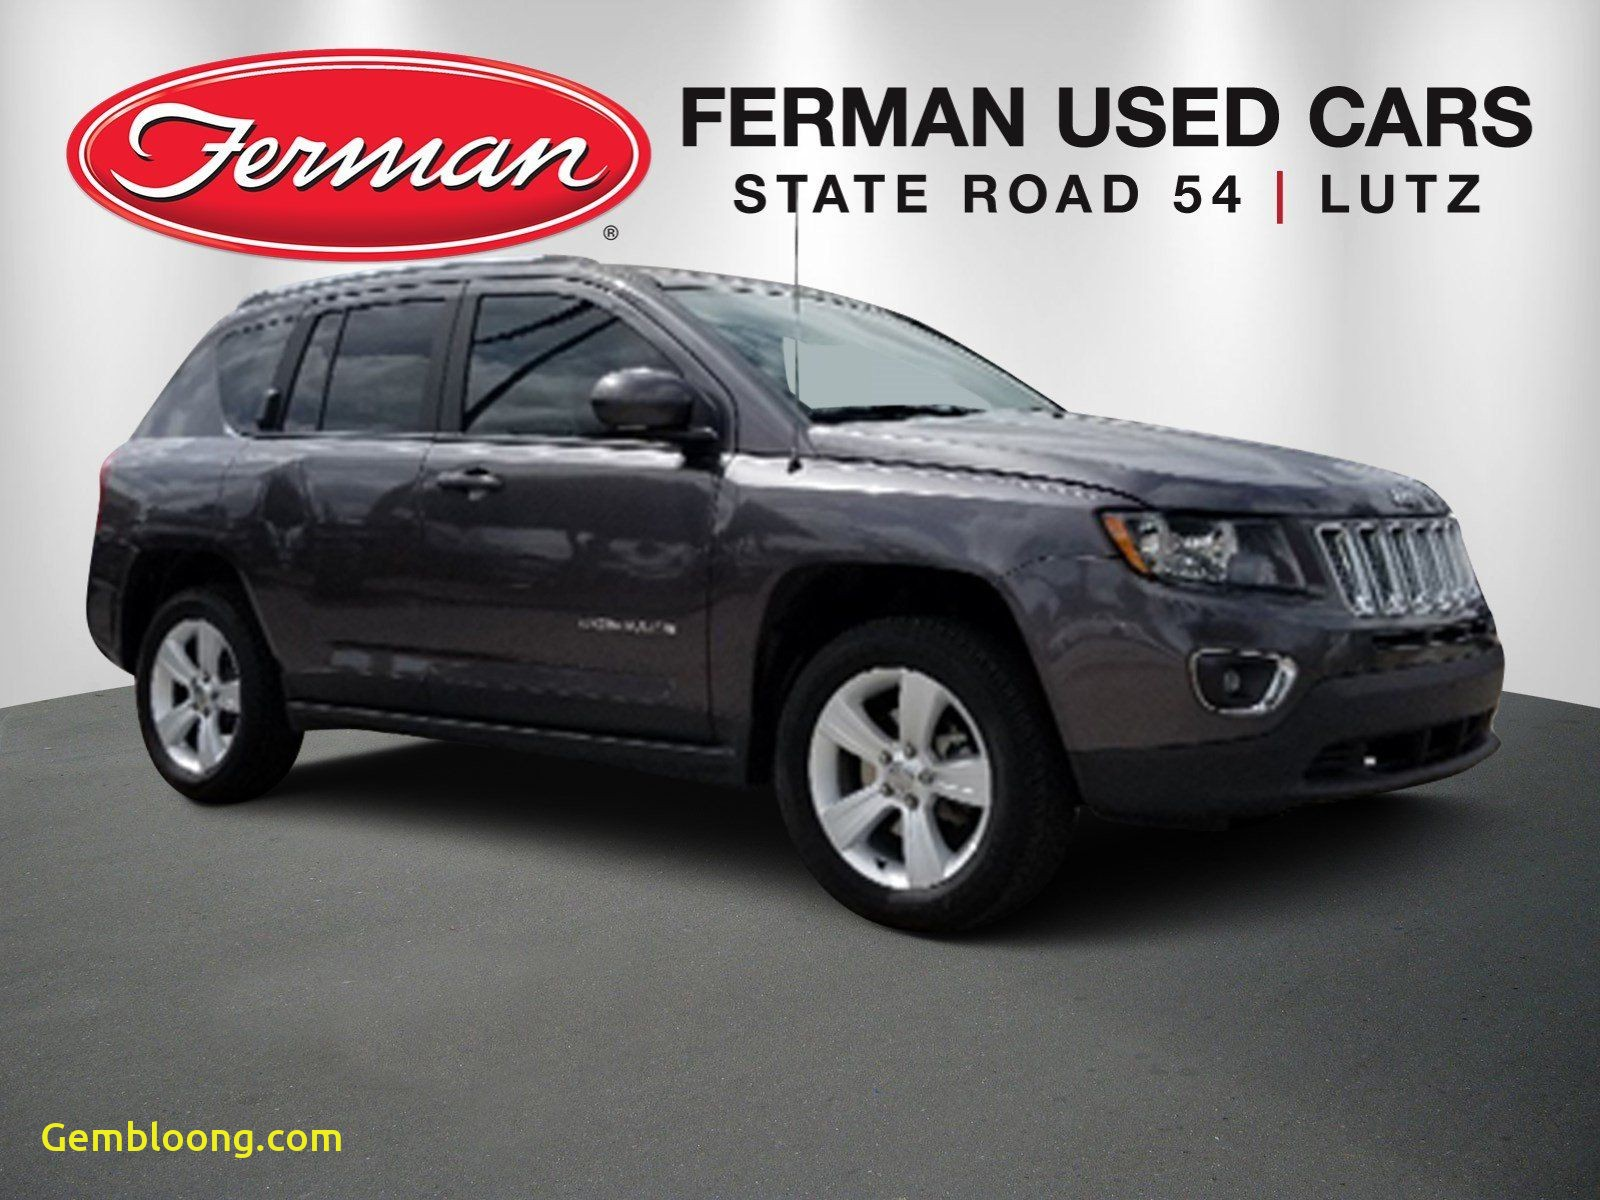 Cheap Used Cars for Sale Near Me Under 1000 New New Cars for Sale Under Tampa Fl Cars for Sale Under